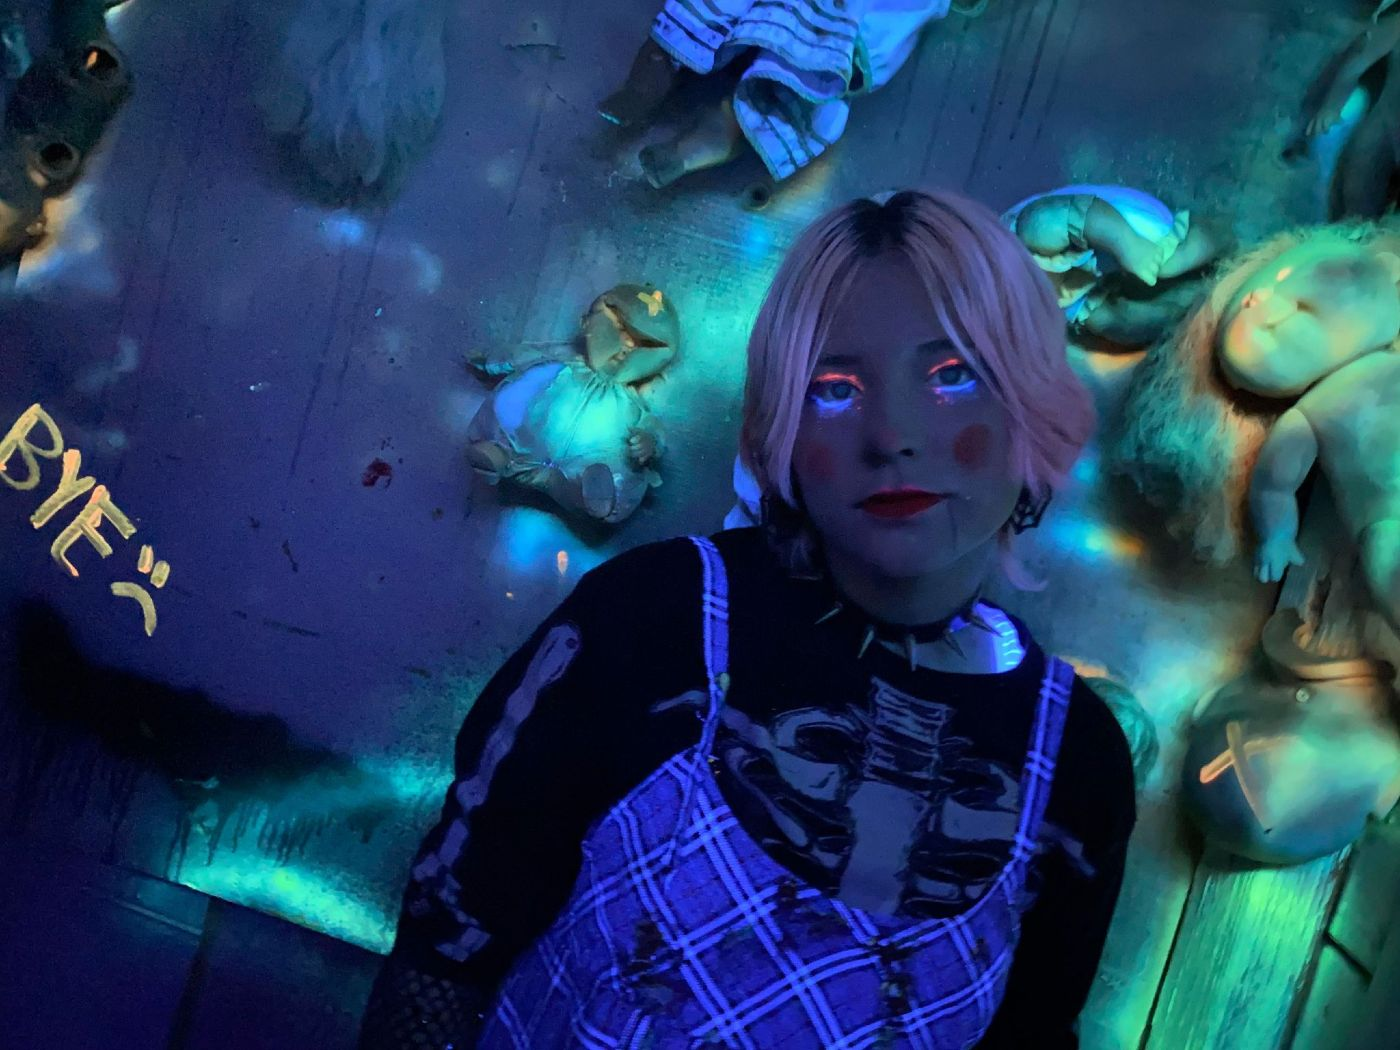 High Desert Haunted House 2021 - Haunted House - Apple Valley CA